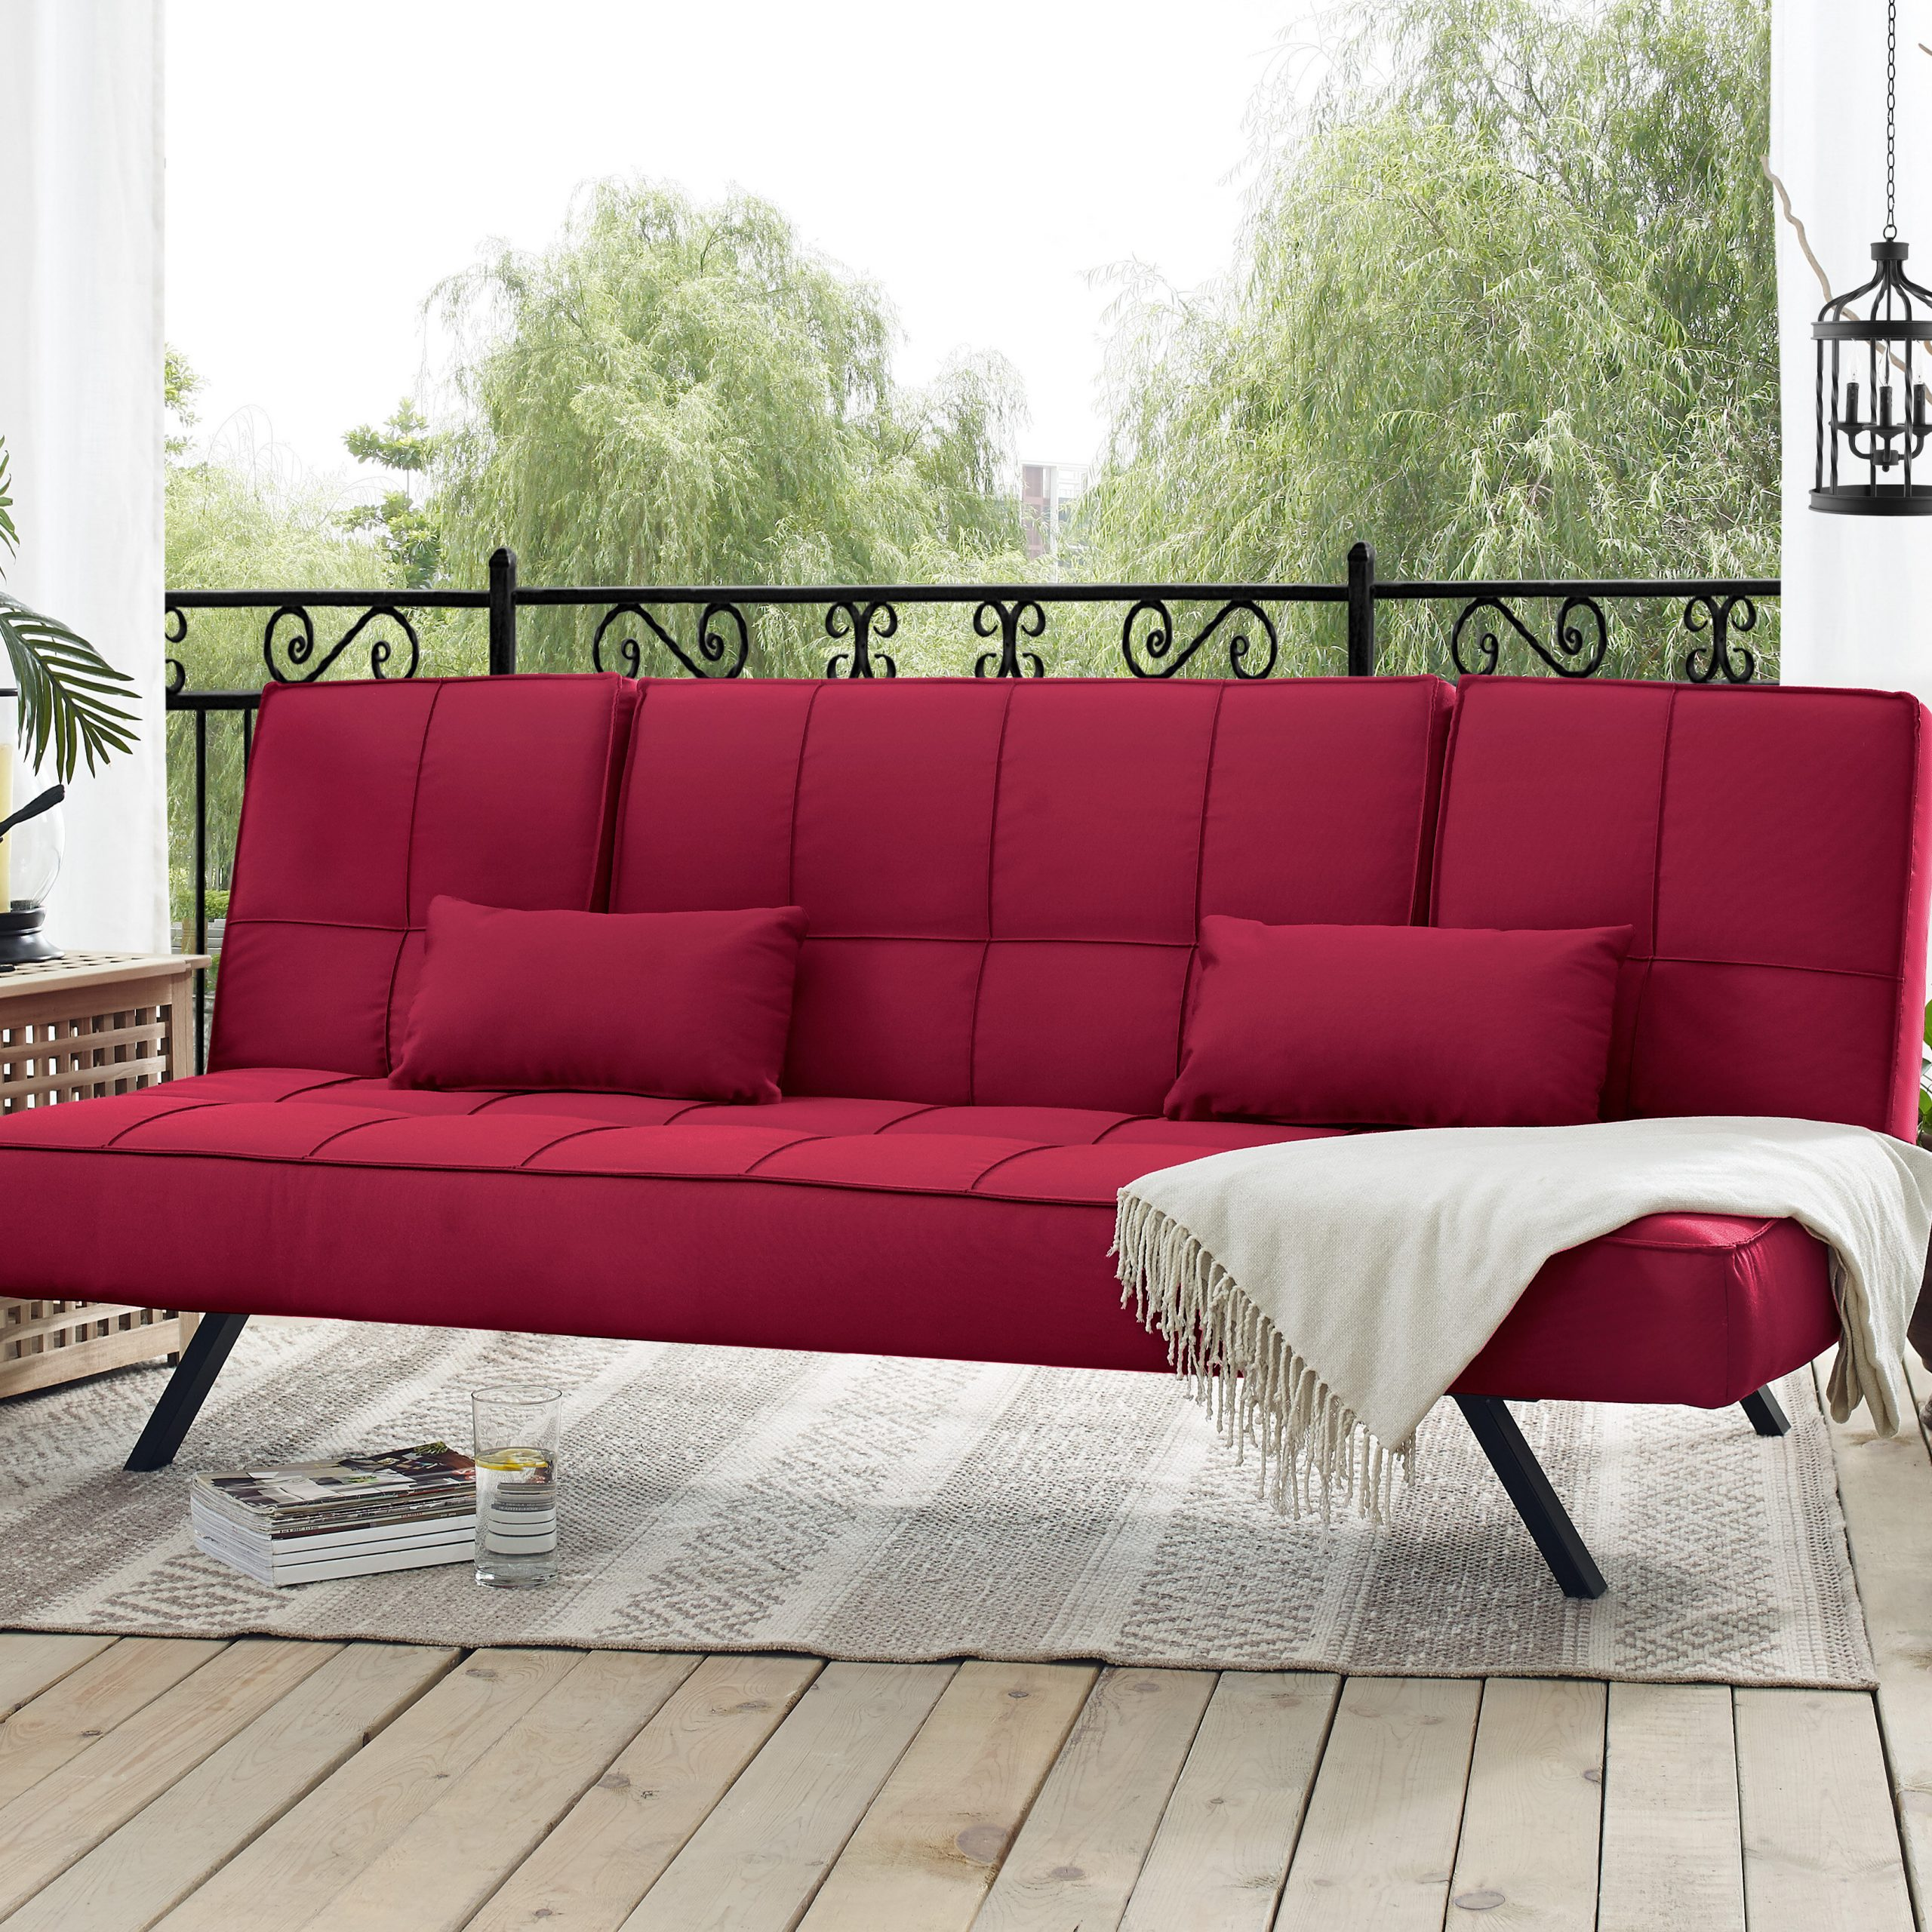 Well Liked Lobdell Patio Sofas With Cushions Throughout Patio Sofa With Cushions (Gallery 16 of 25)